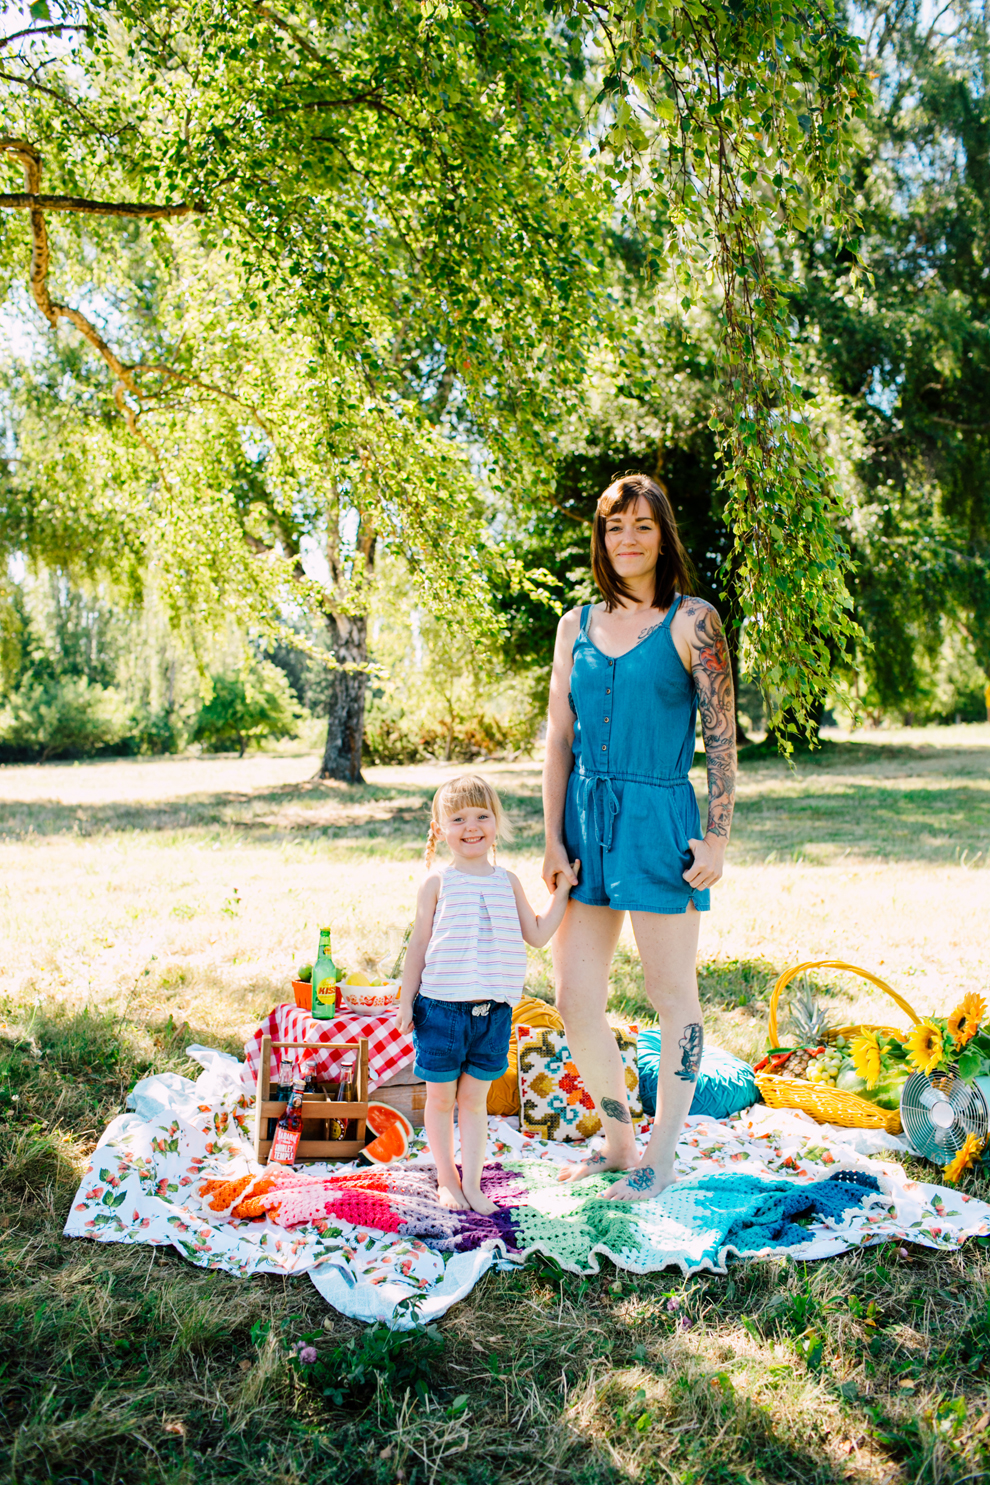 013-bellingham-styled-summer-mini-session-katheryn-moran-photography.jpg